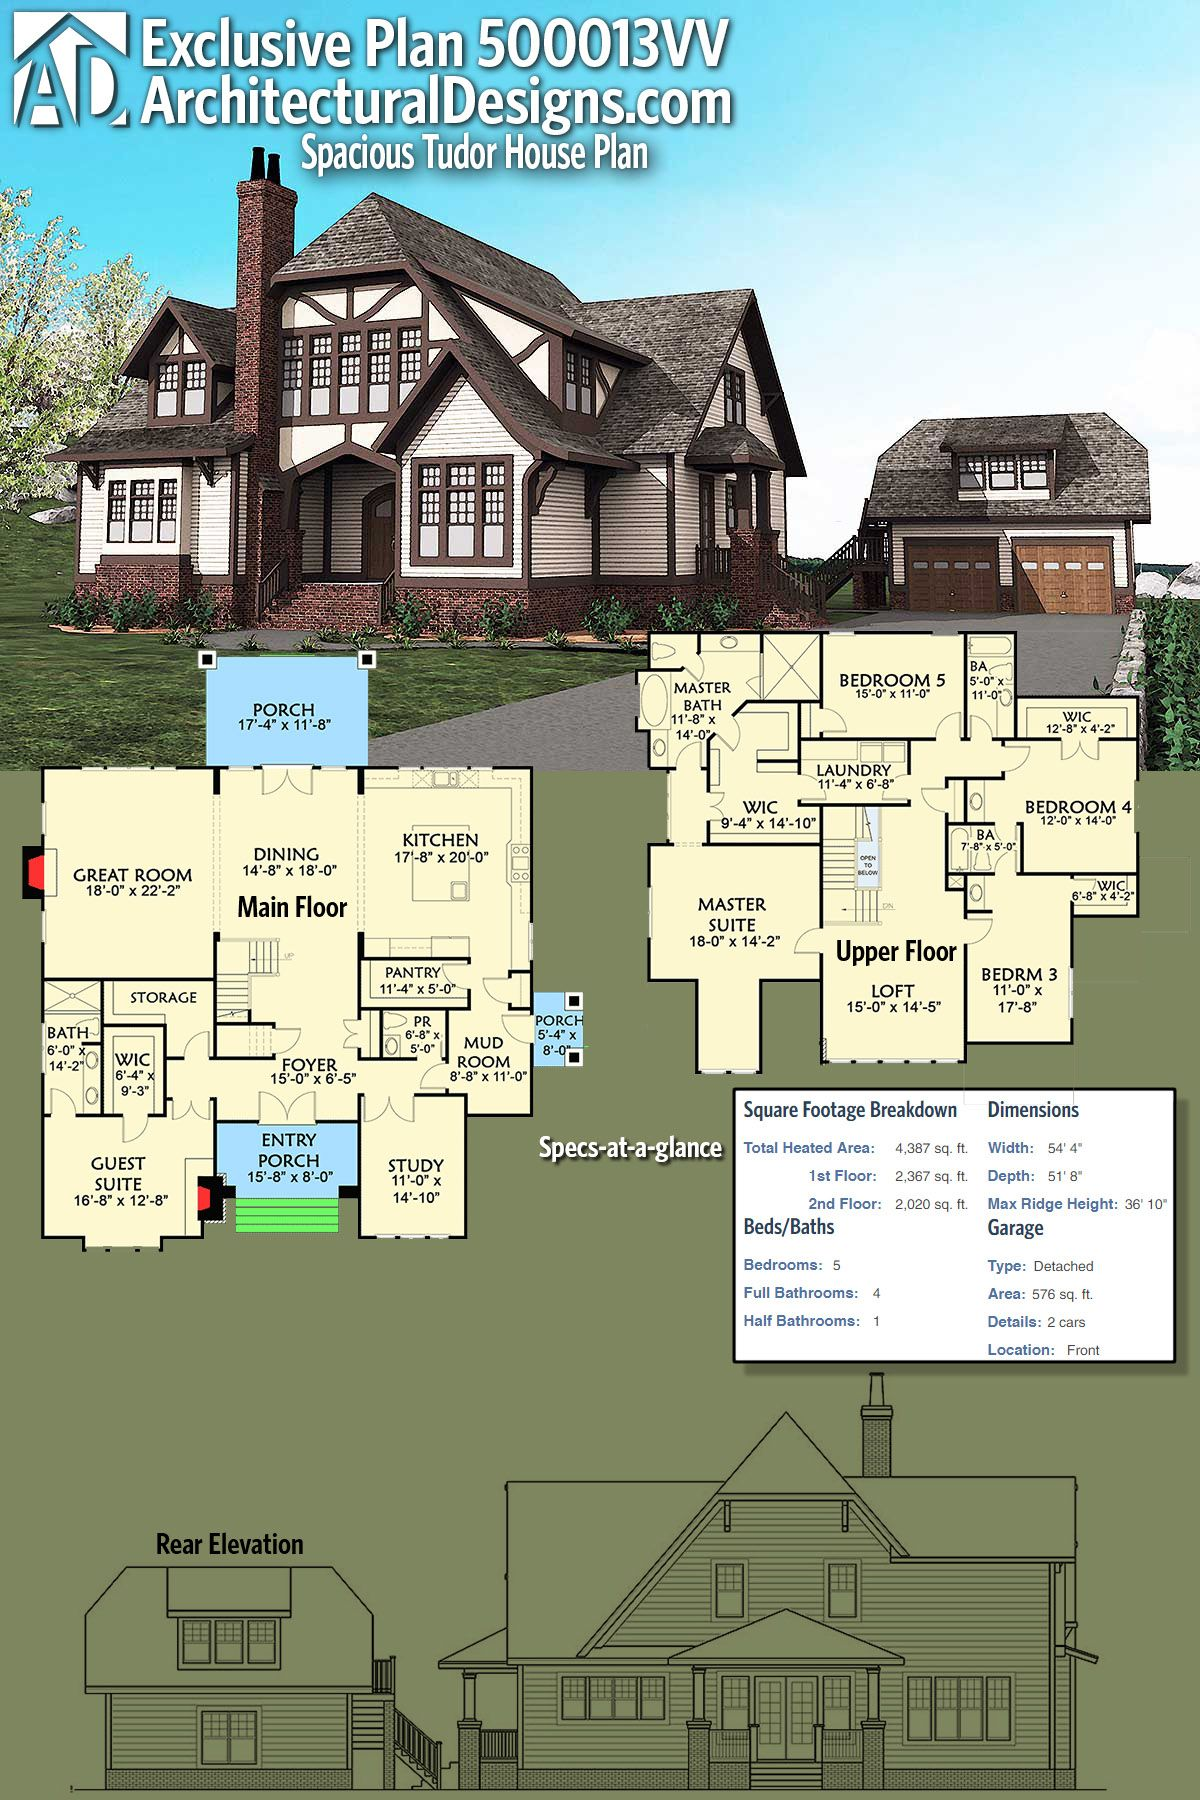 Architectural Designs Tudor House Plan 500013VV gives